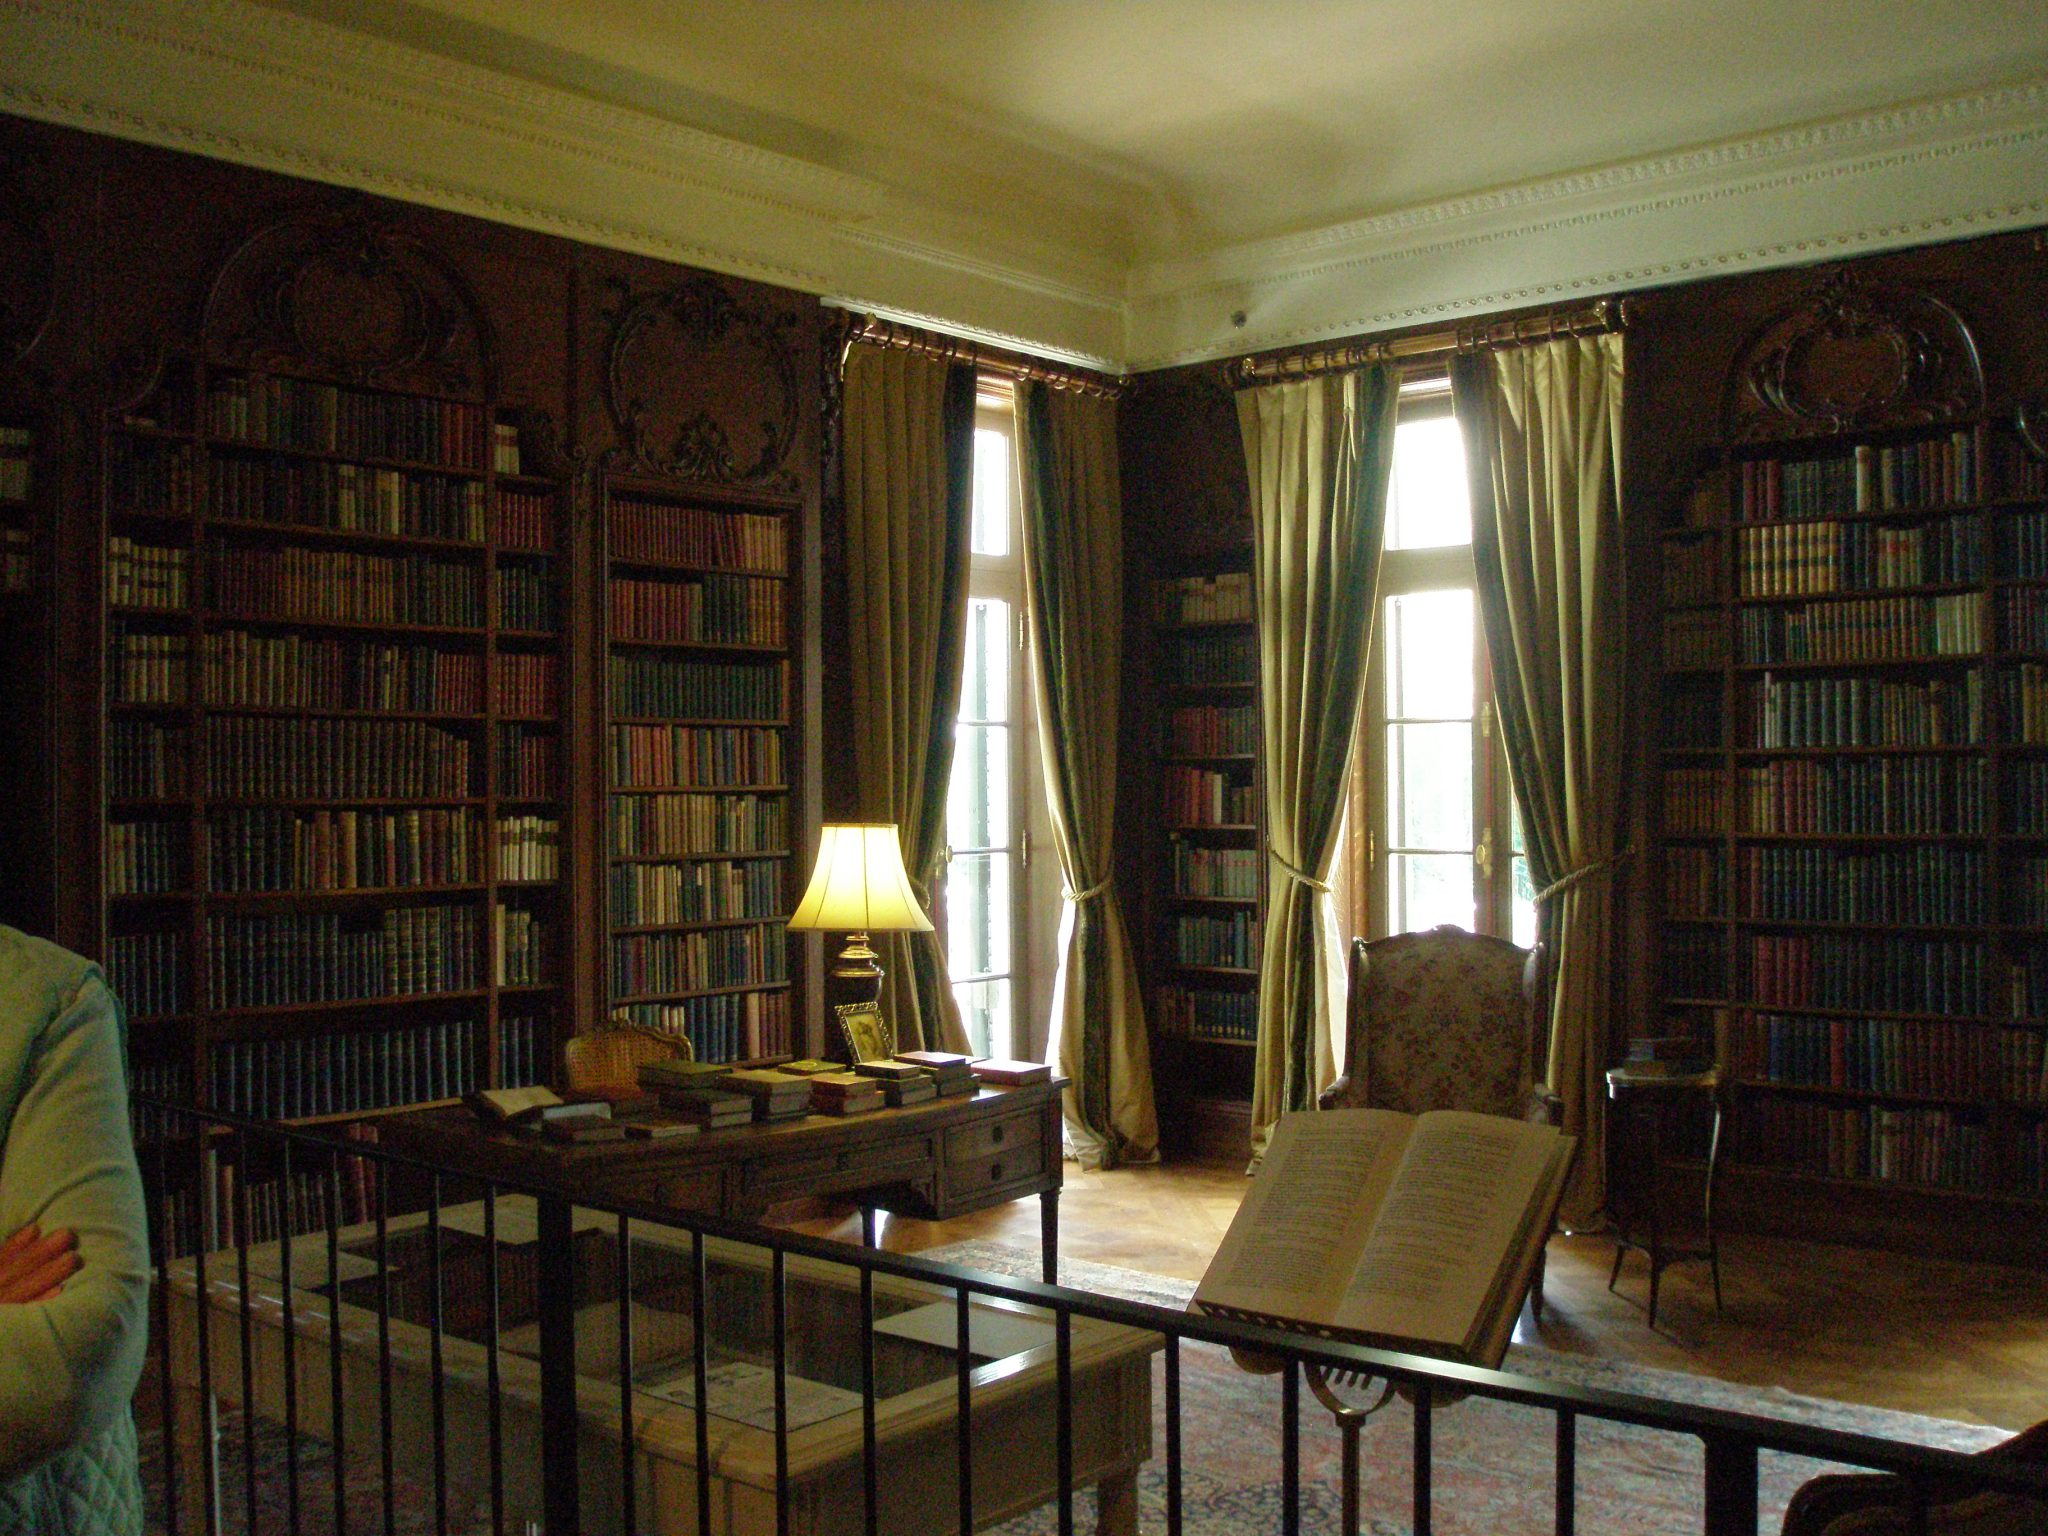 Edith Wharton's Library on the Main Floor. Wharton liked to gather friends here for literary readings.